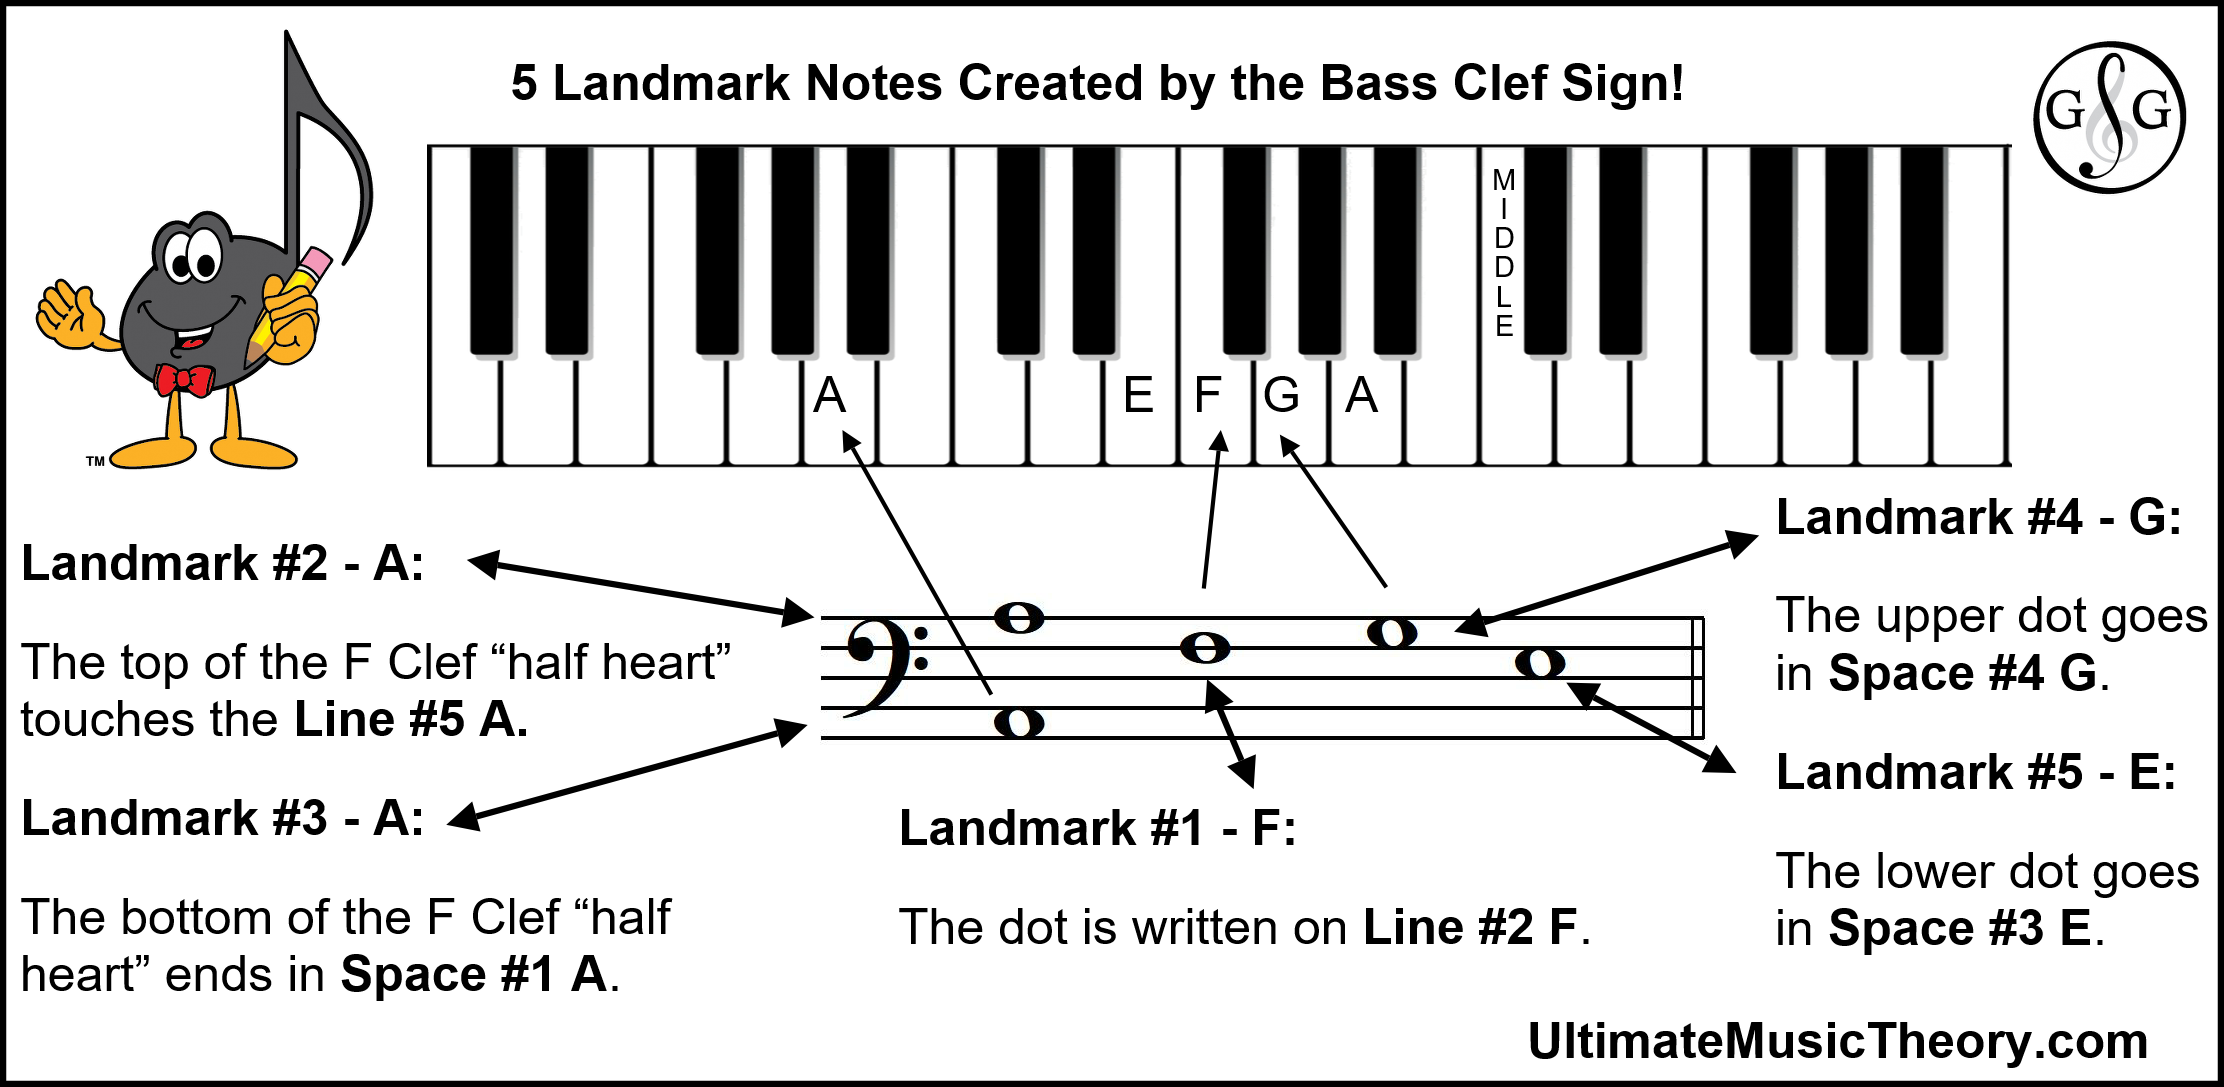 Clef Signs Create Landmark Notes Bass